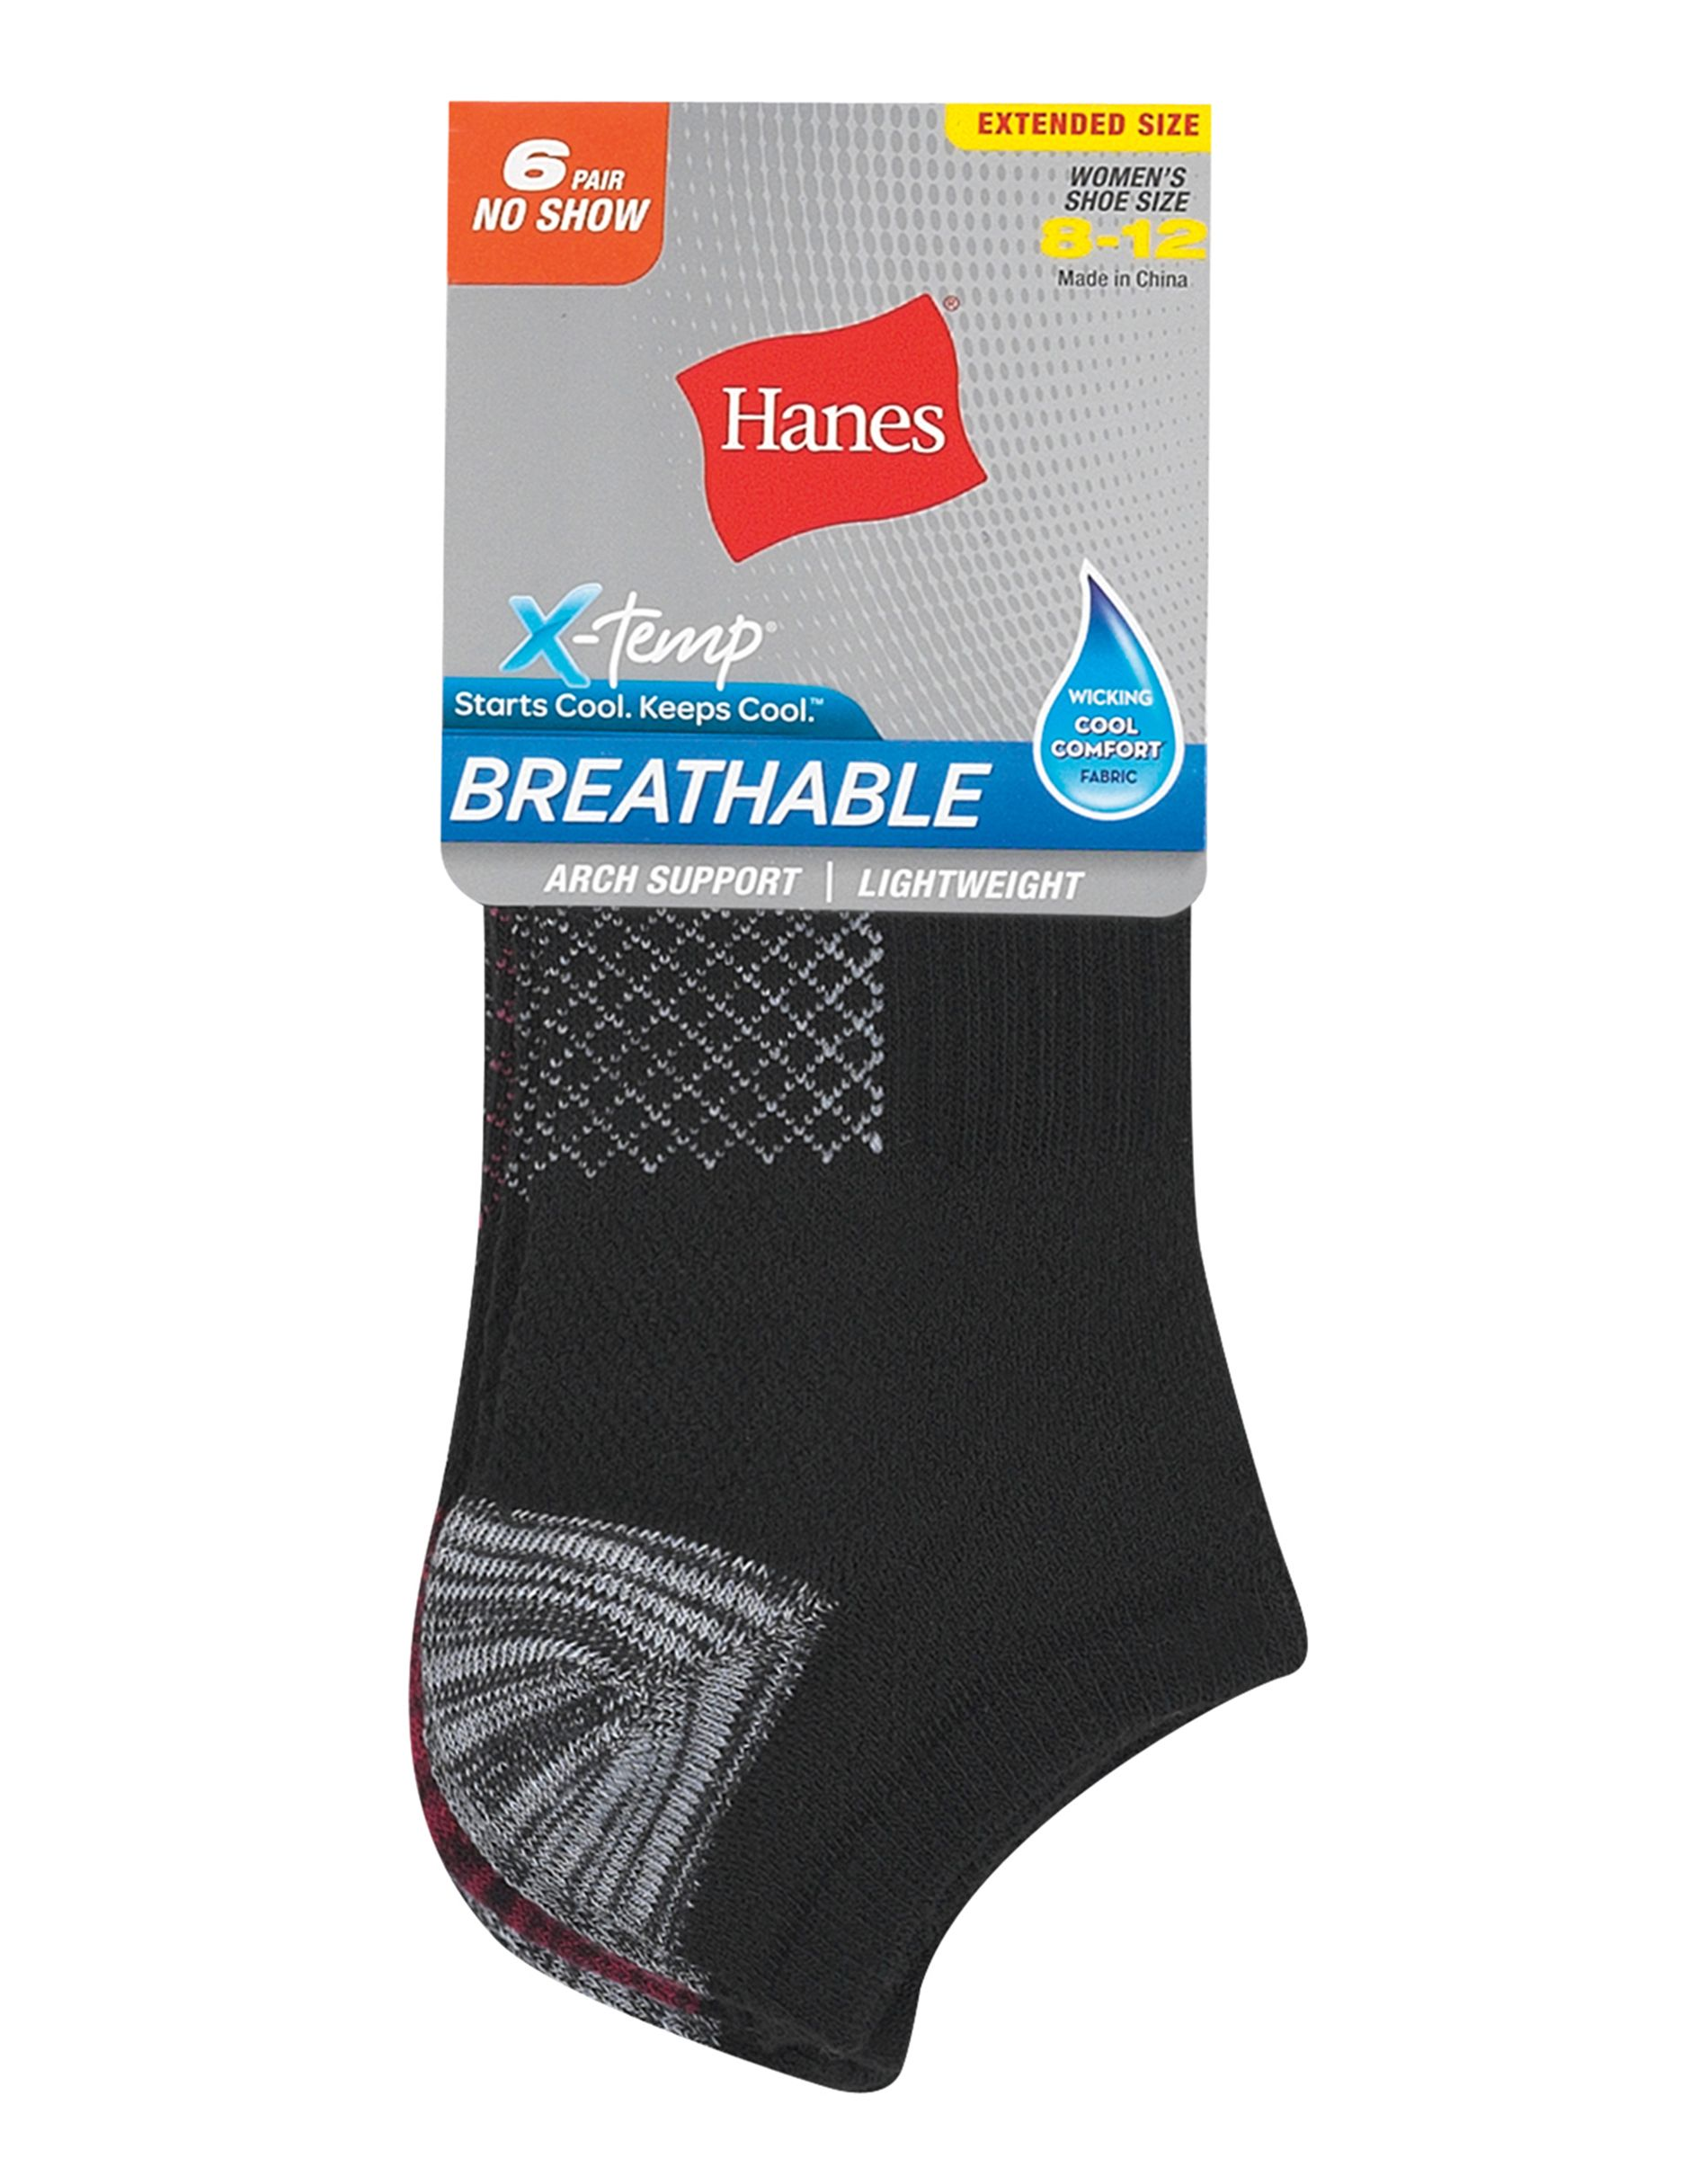 hanes women's breathable lightweight no show socks extended sizes 8-12, 6-pack women Hanes